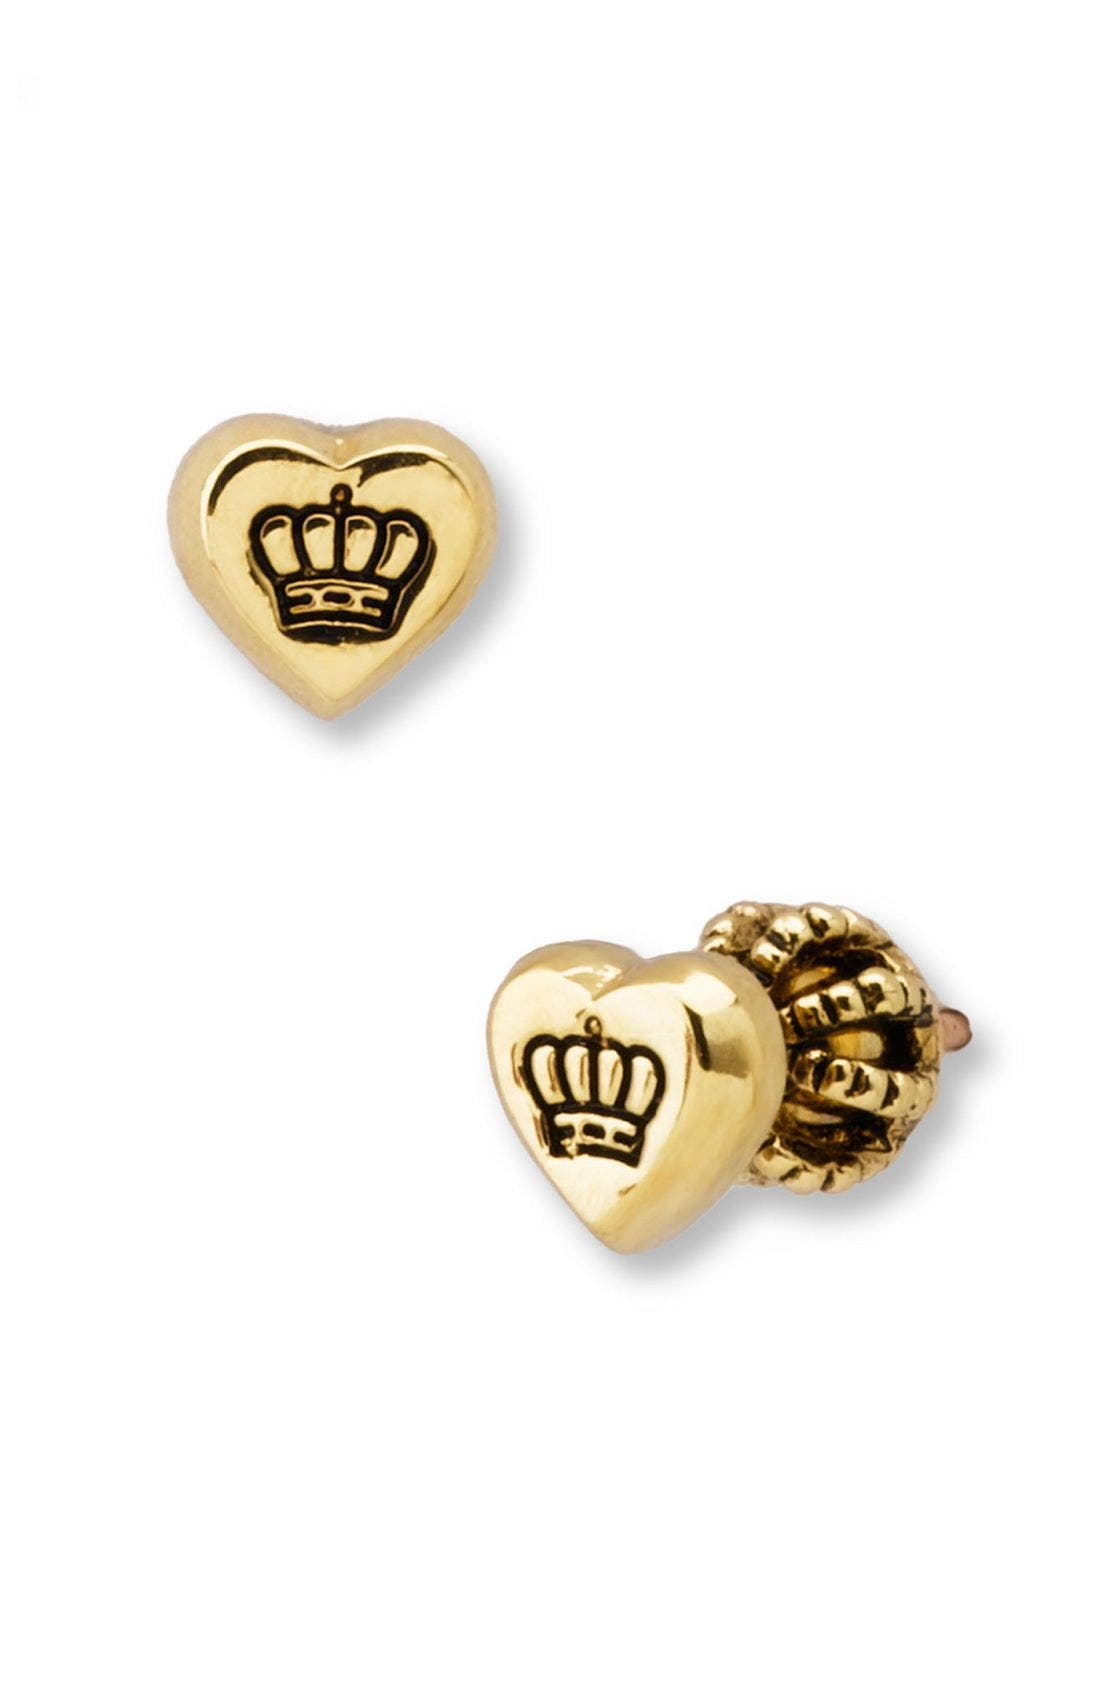 Main Image - Juicy Couture Heart Stud Earrings